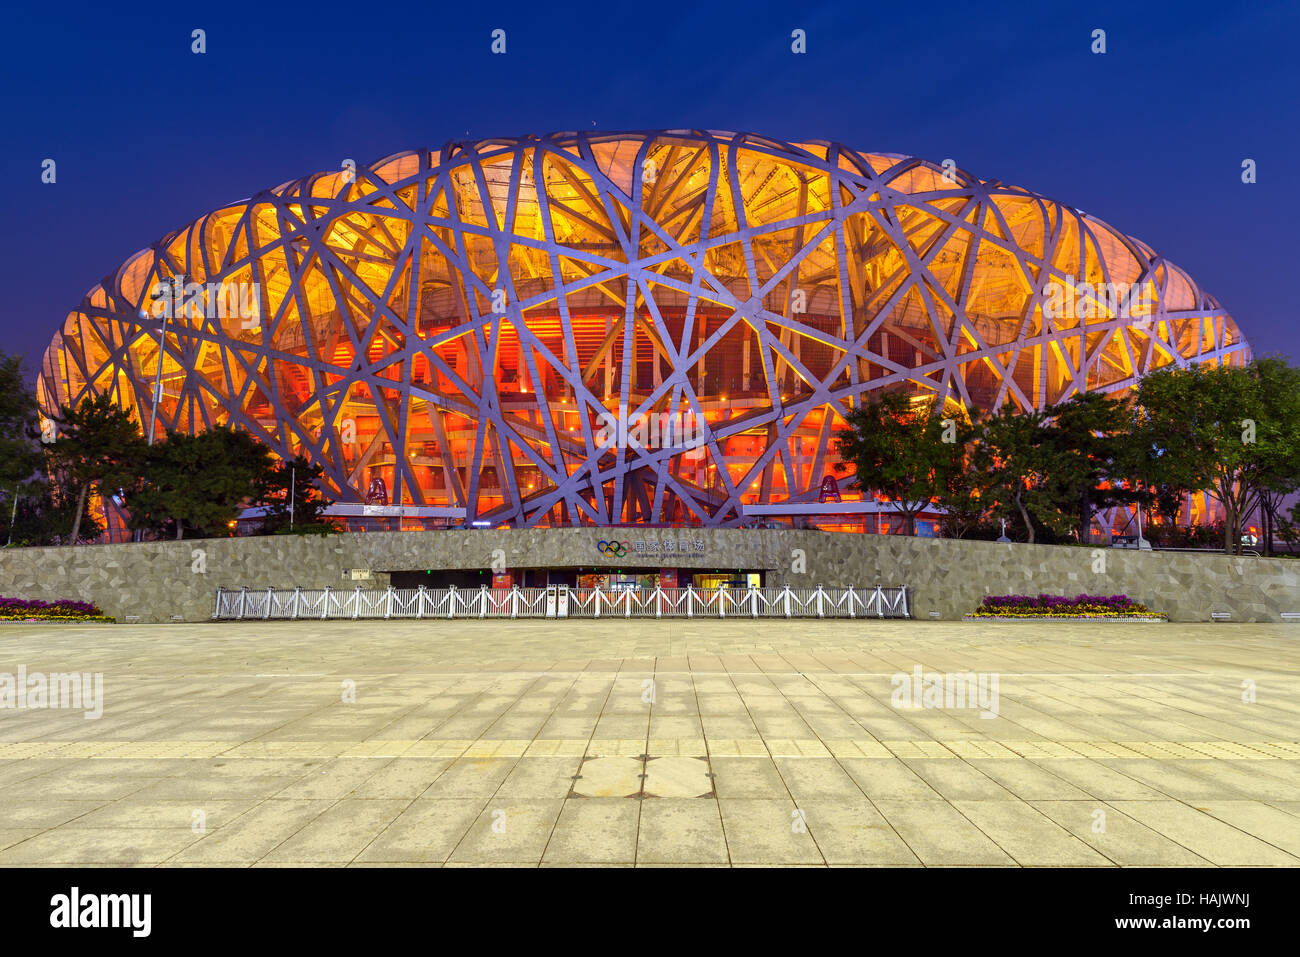 Beijing National Stadium - A front wide-angle night view of Beijing National Stadium, also known as Bird's Nest, Stock Foto